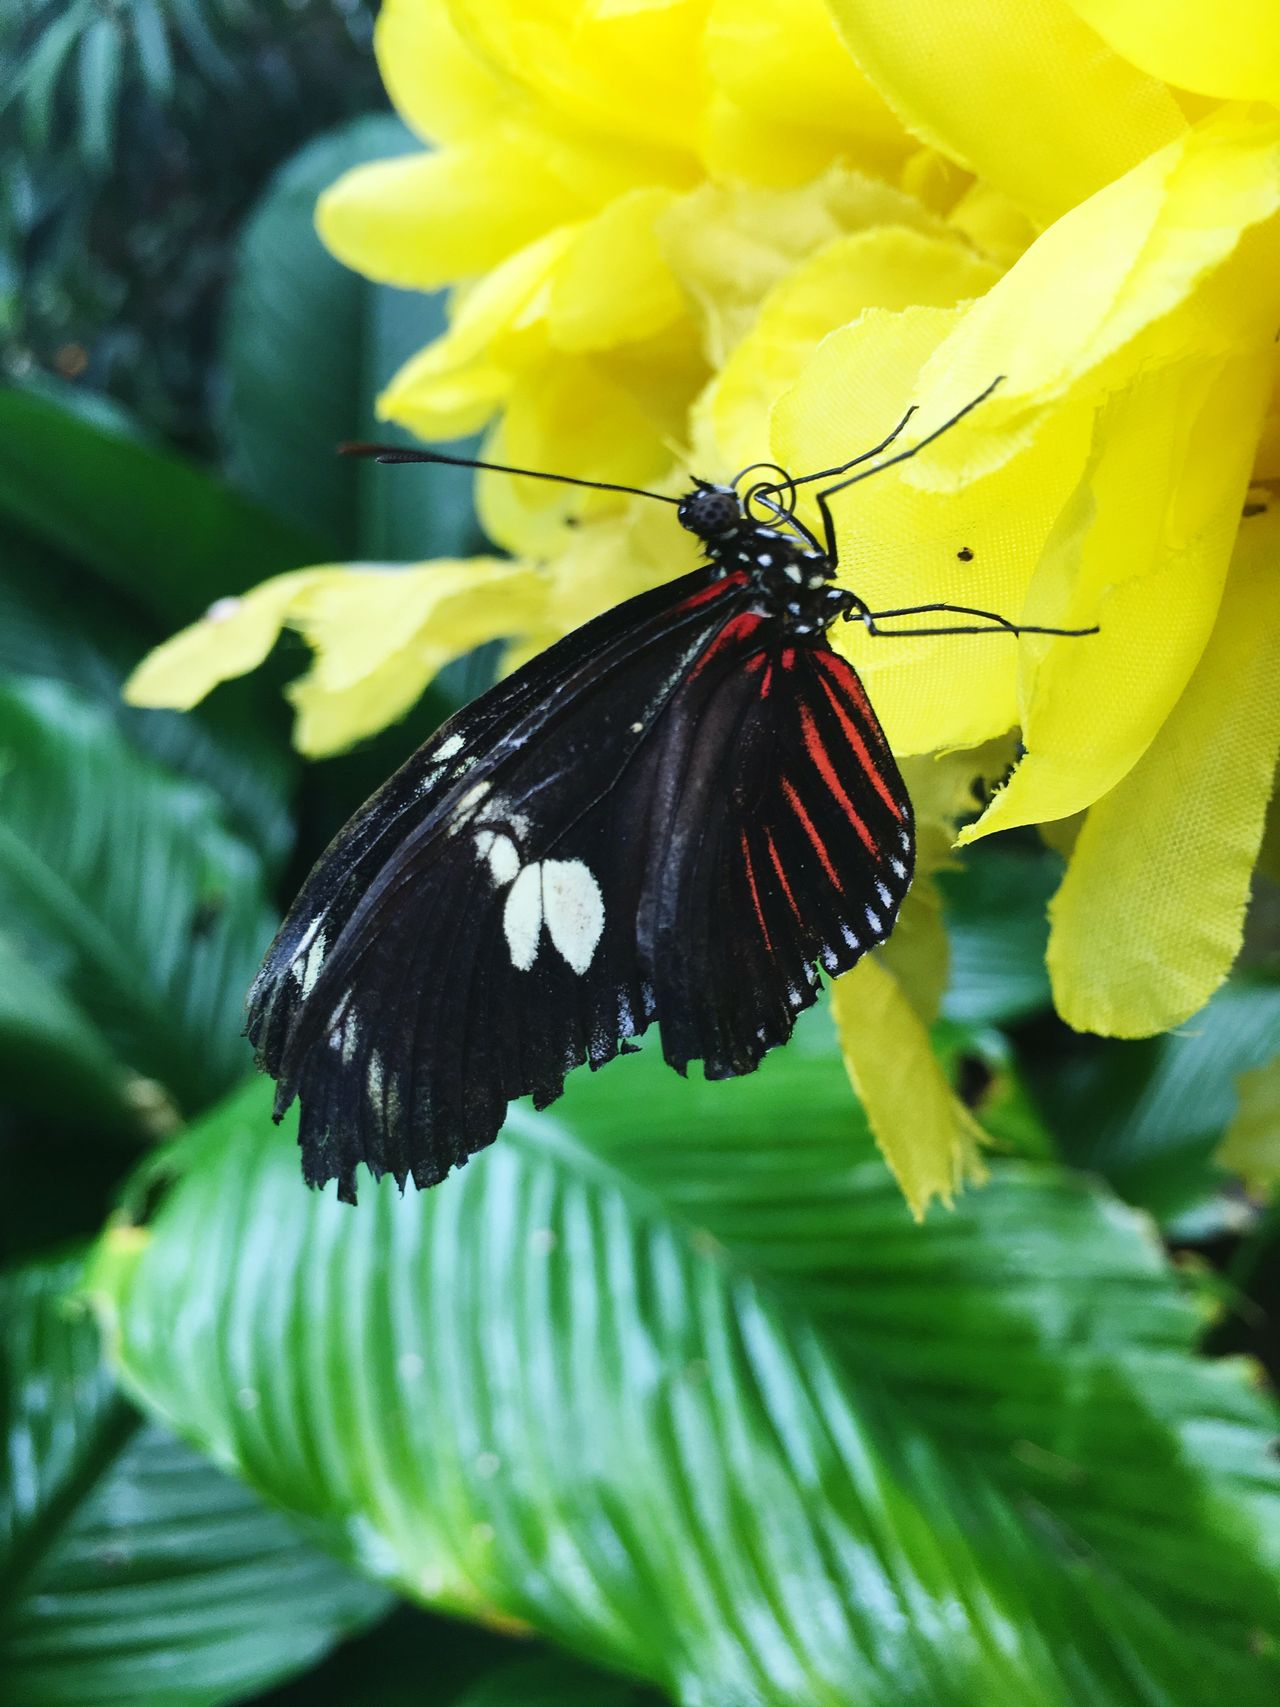 Butterfly Insect Animal Themes Animals In The Wild Butterfly - Insect One Animal Fragility Flower Animal Wildlife Close-up Beauty In Nature Nature Black Color Yellow Day Freshness No People Symbiotic Relationship Pollination Petal Outdoors